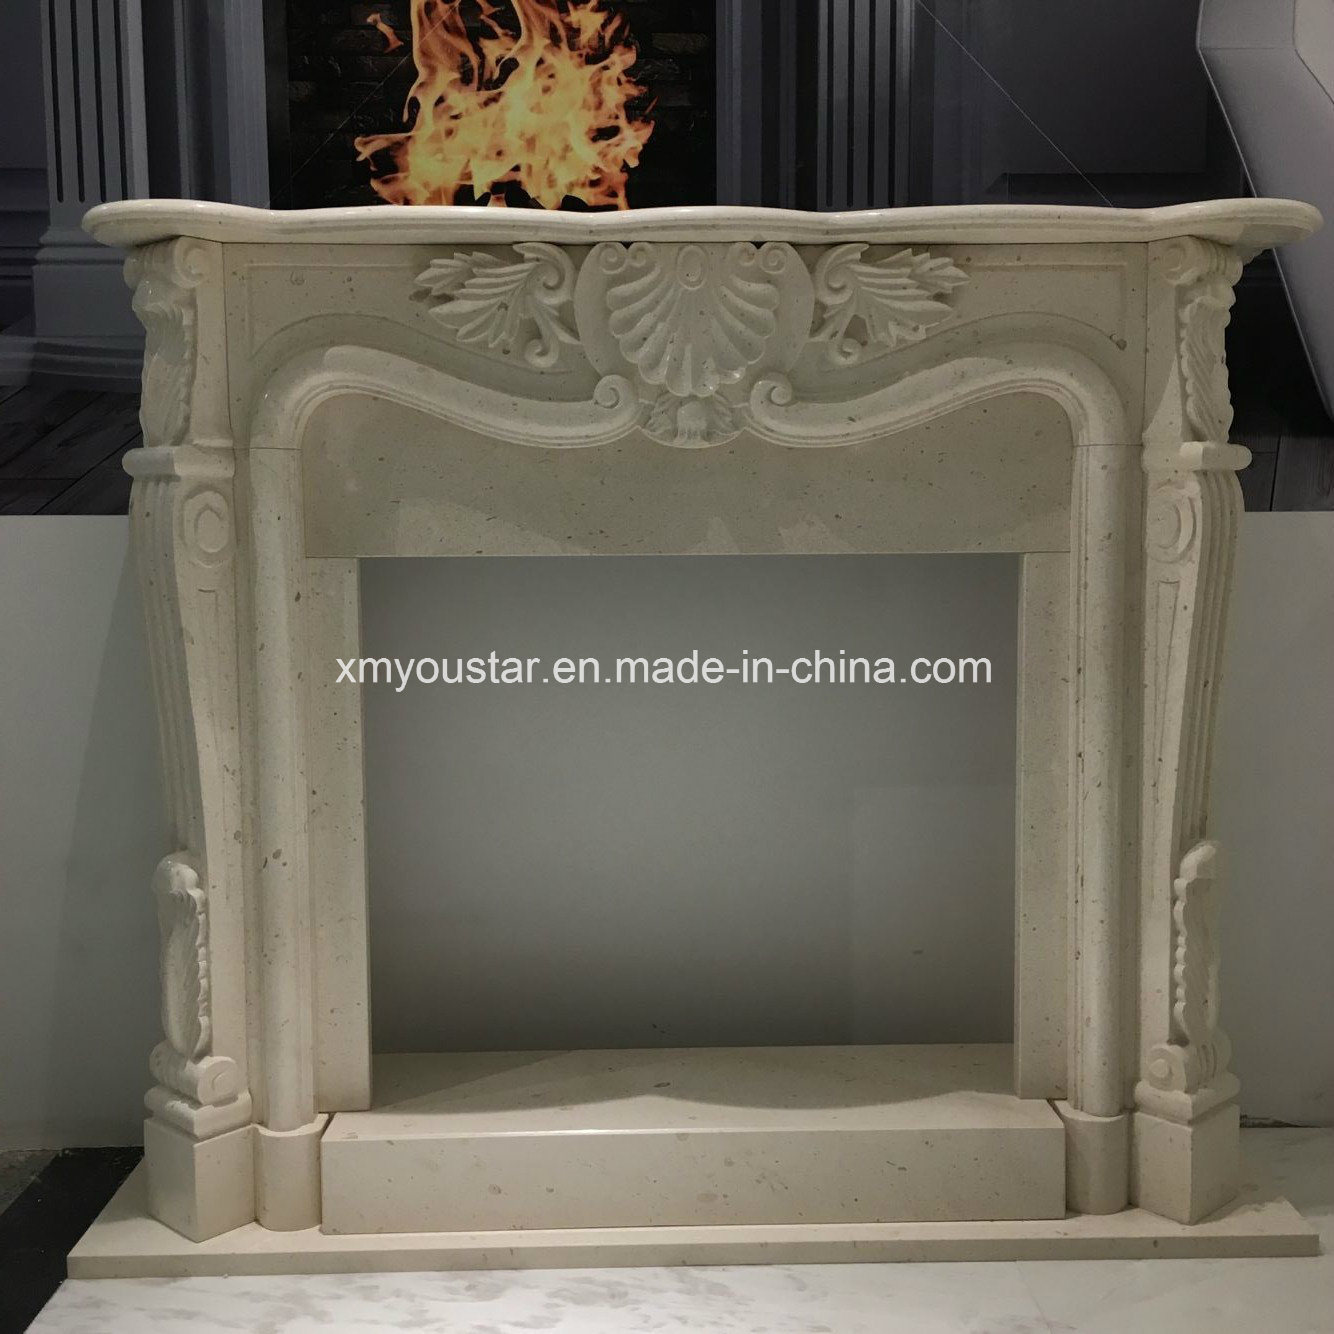 China Natural Stone Modern Style Home Decoration Carving Gray Marble Fireplace China Stone Fireplace Modern Fireplace